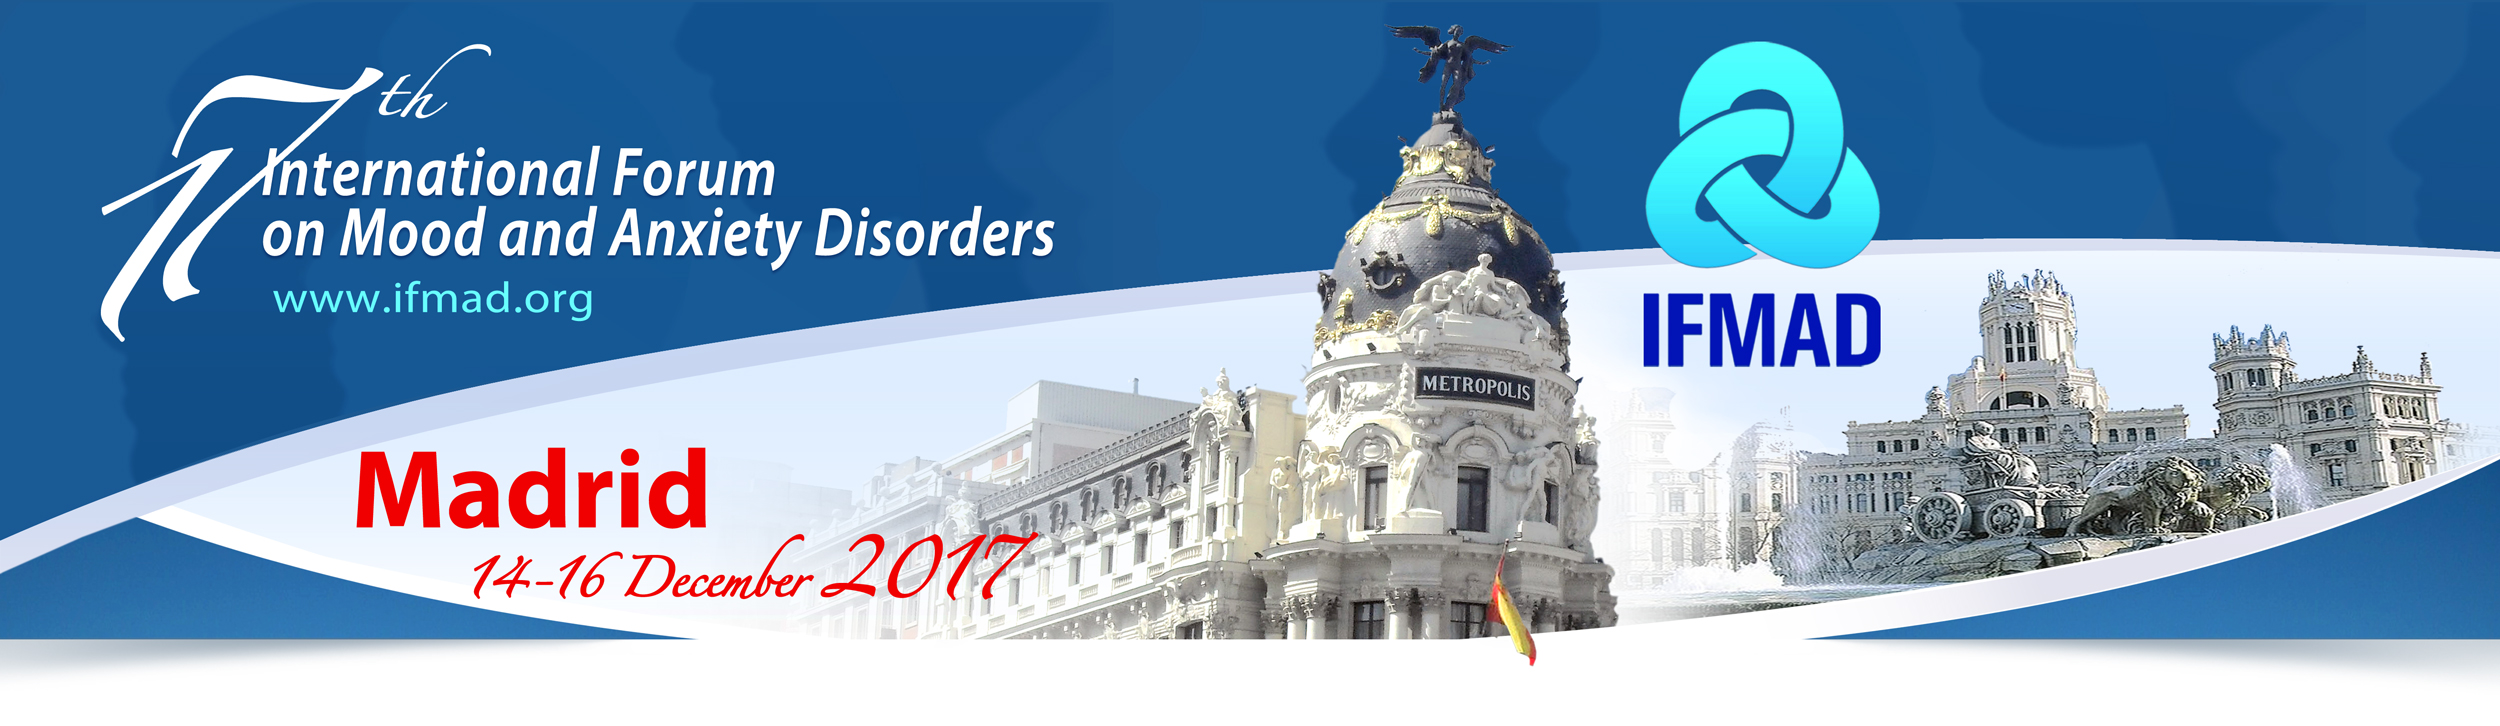 17th International Forum On Mood and Anxiety Disorders, Madrid December 14-16, 2017